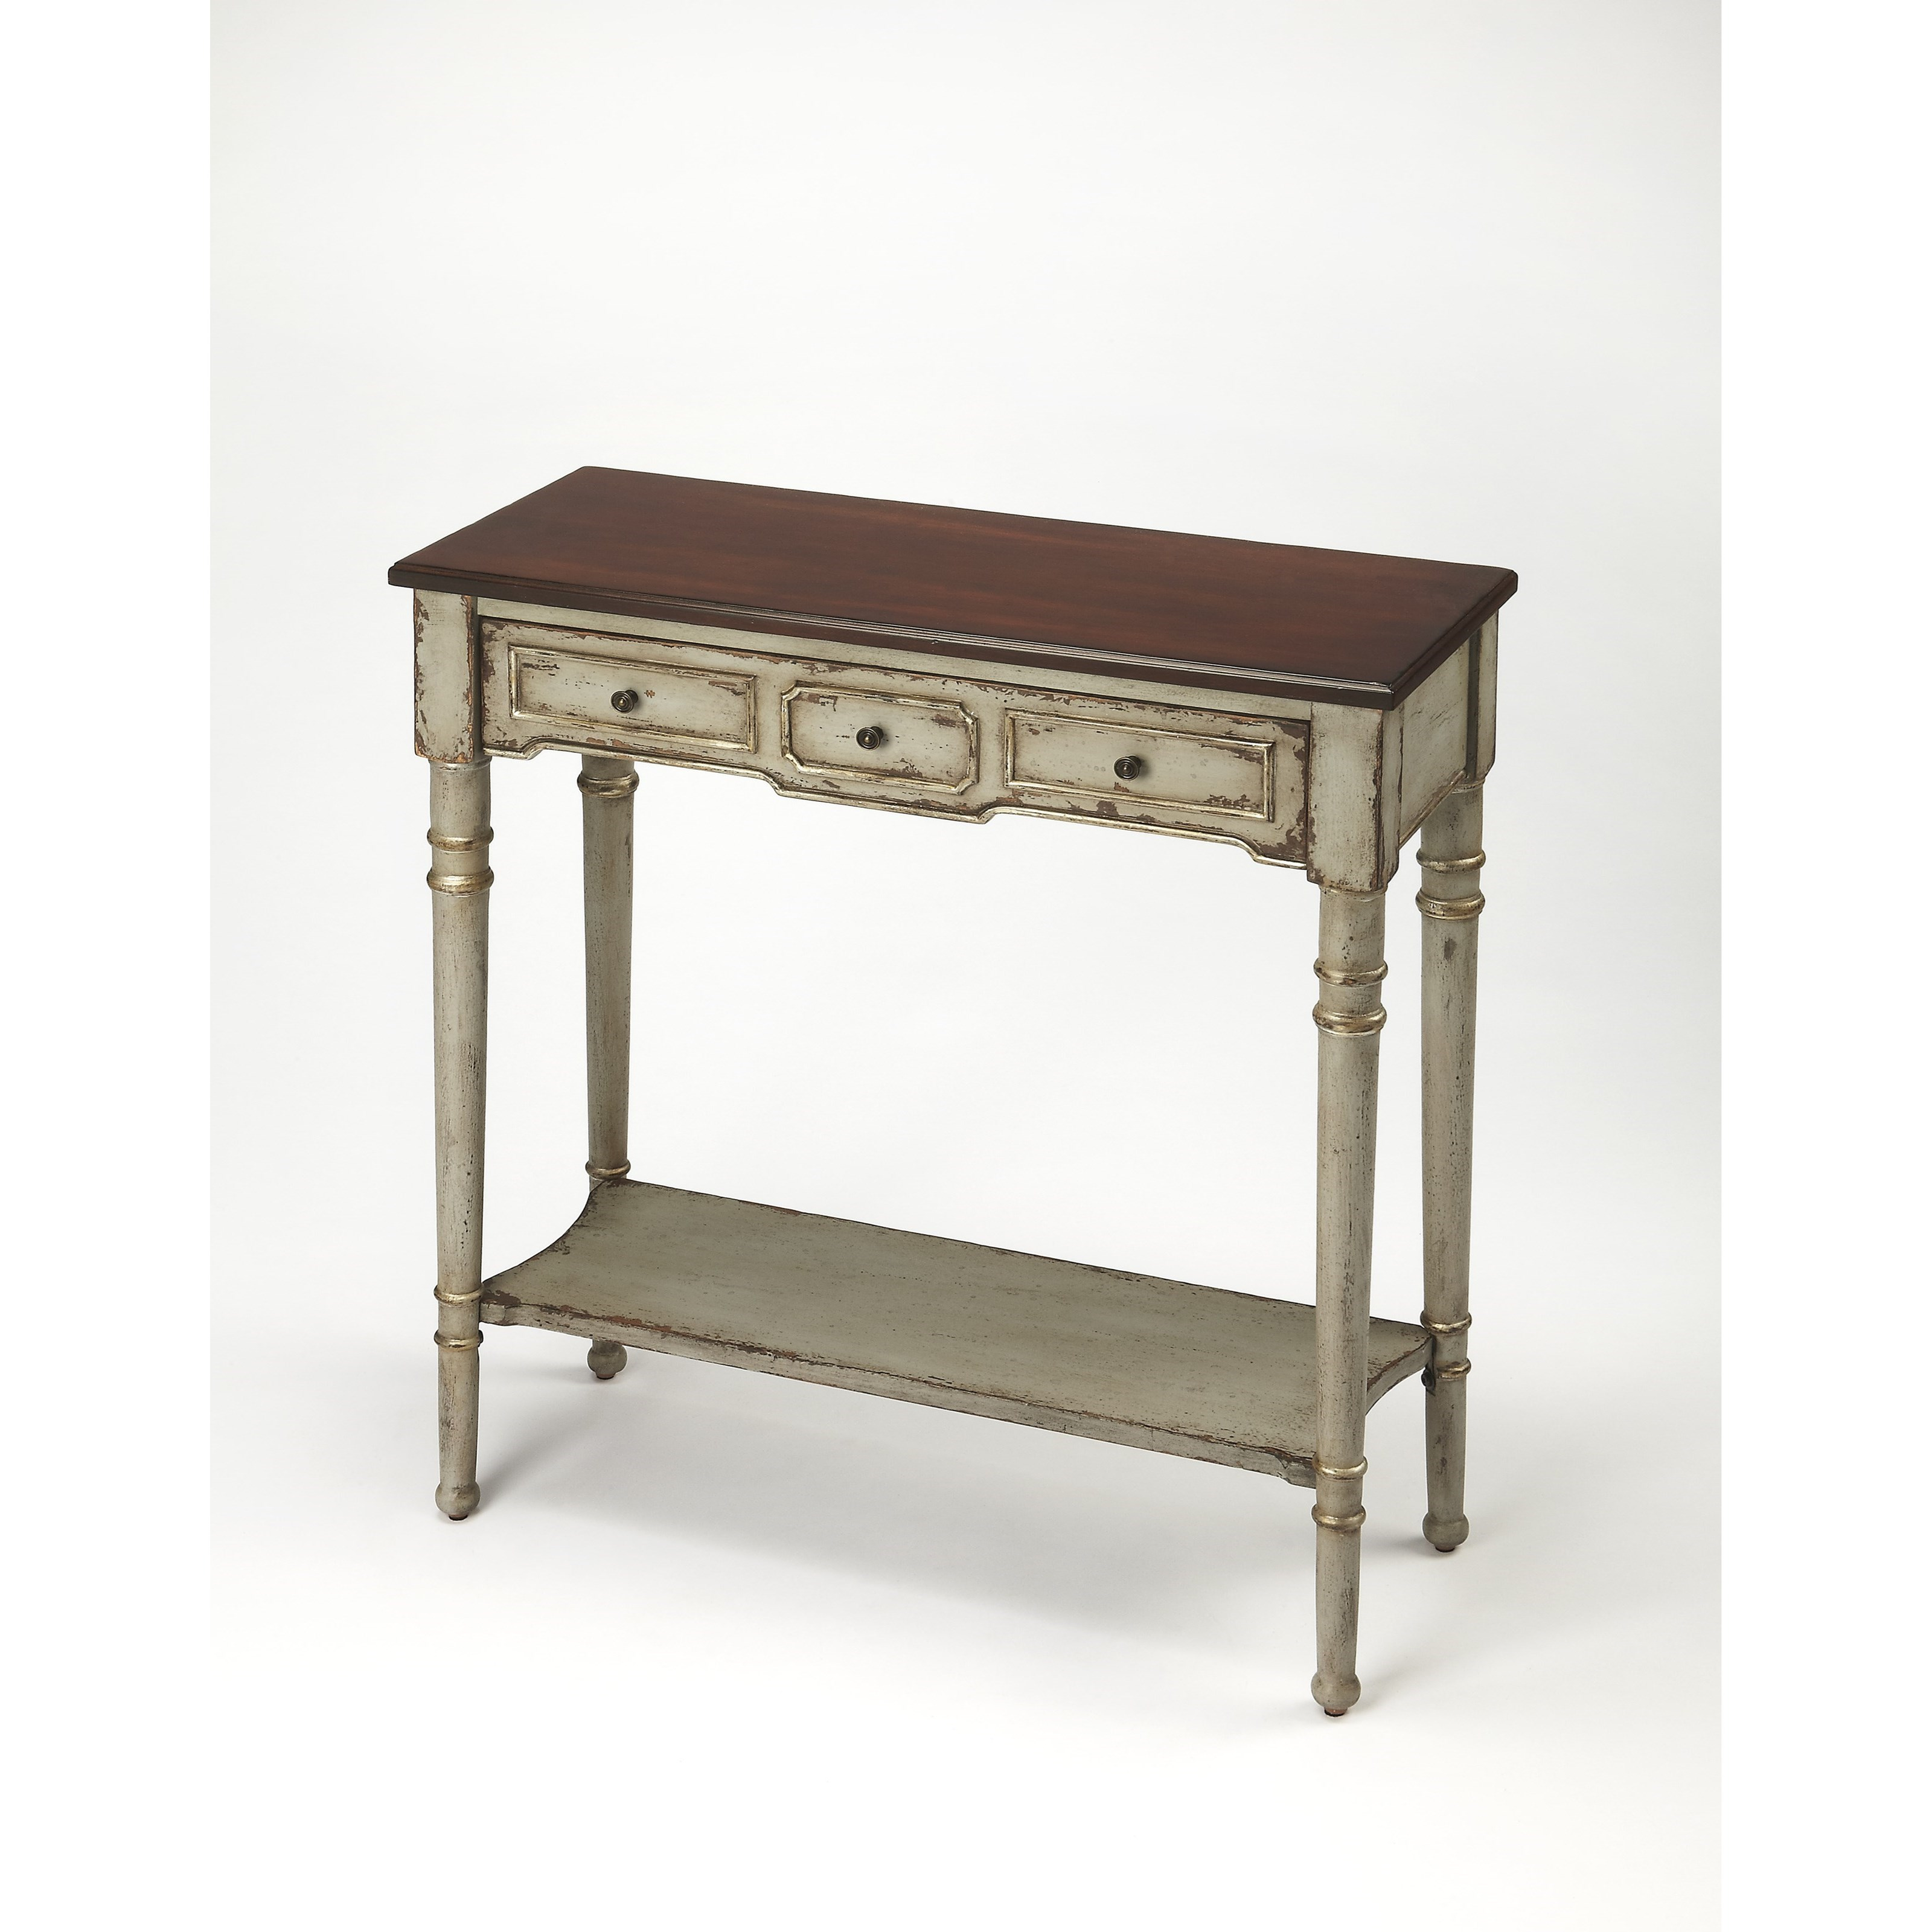 Butler Specialty Company Artist's Originals Console Table - Item Number: 3515359